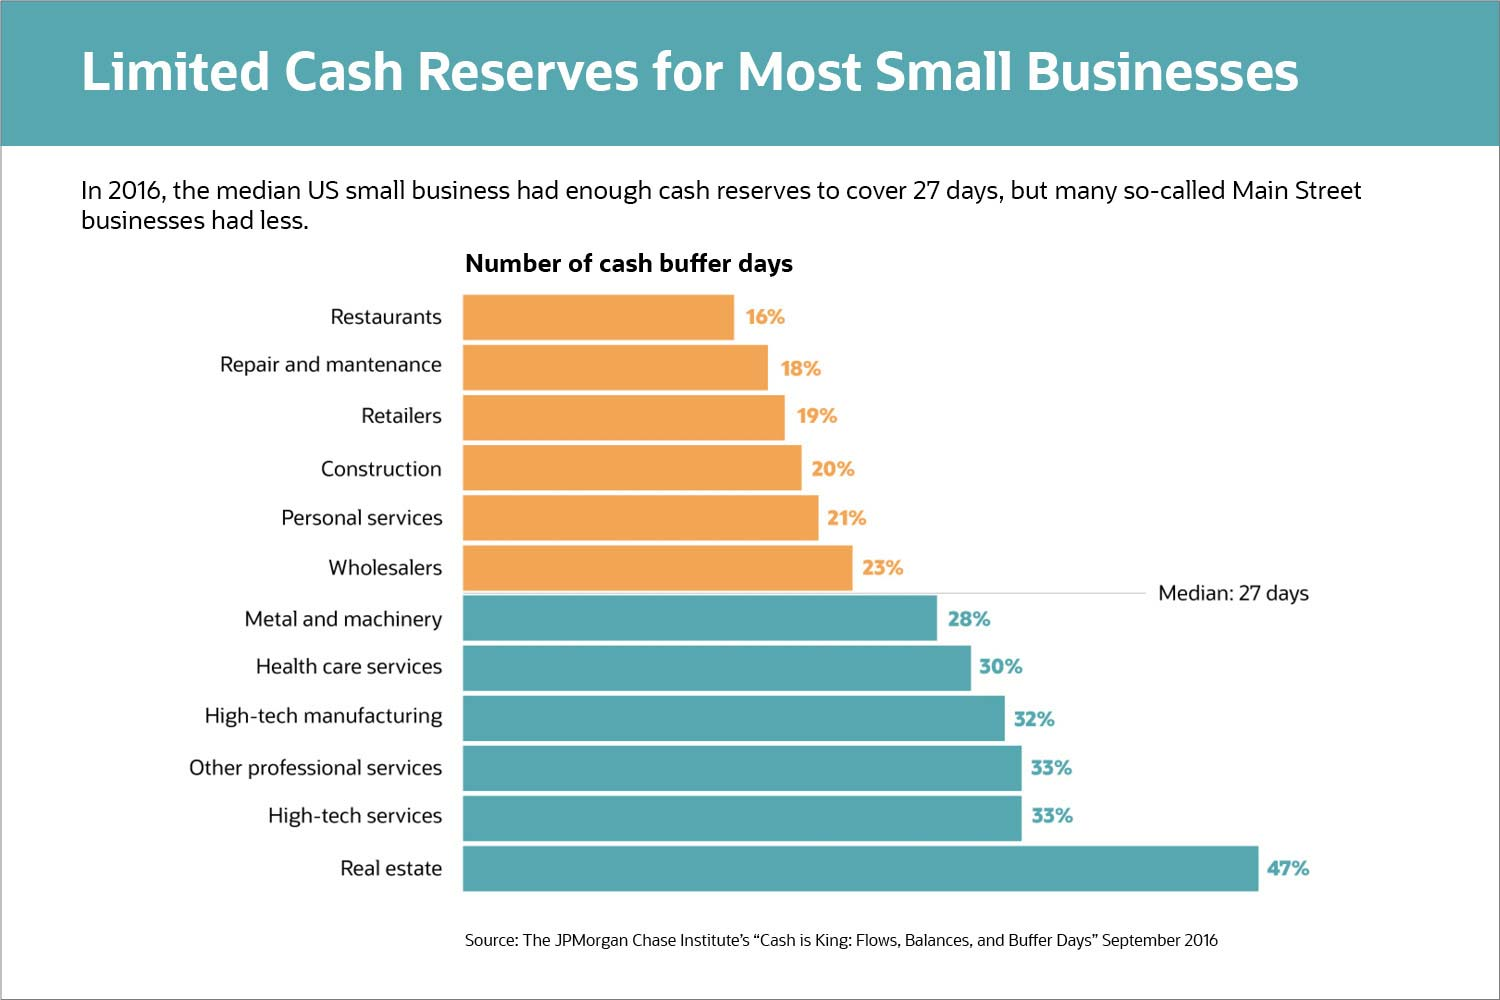 Limited Cash Reserves for most Small Businesses